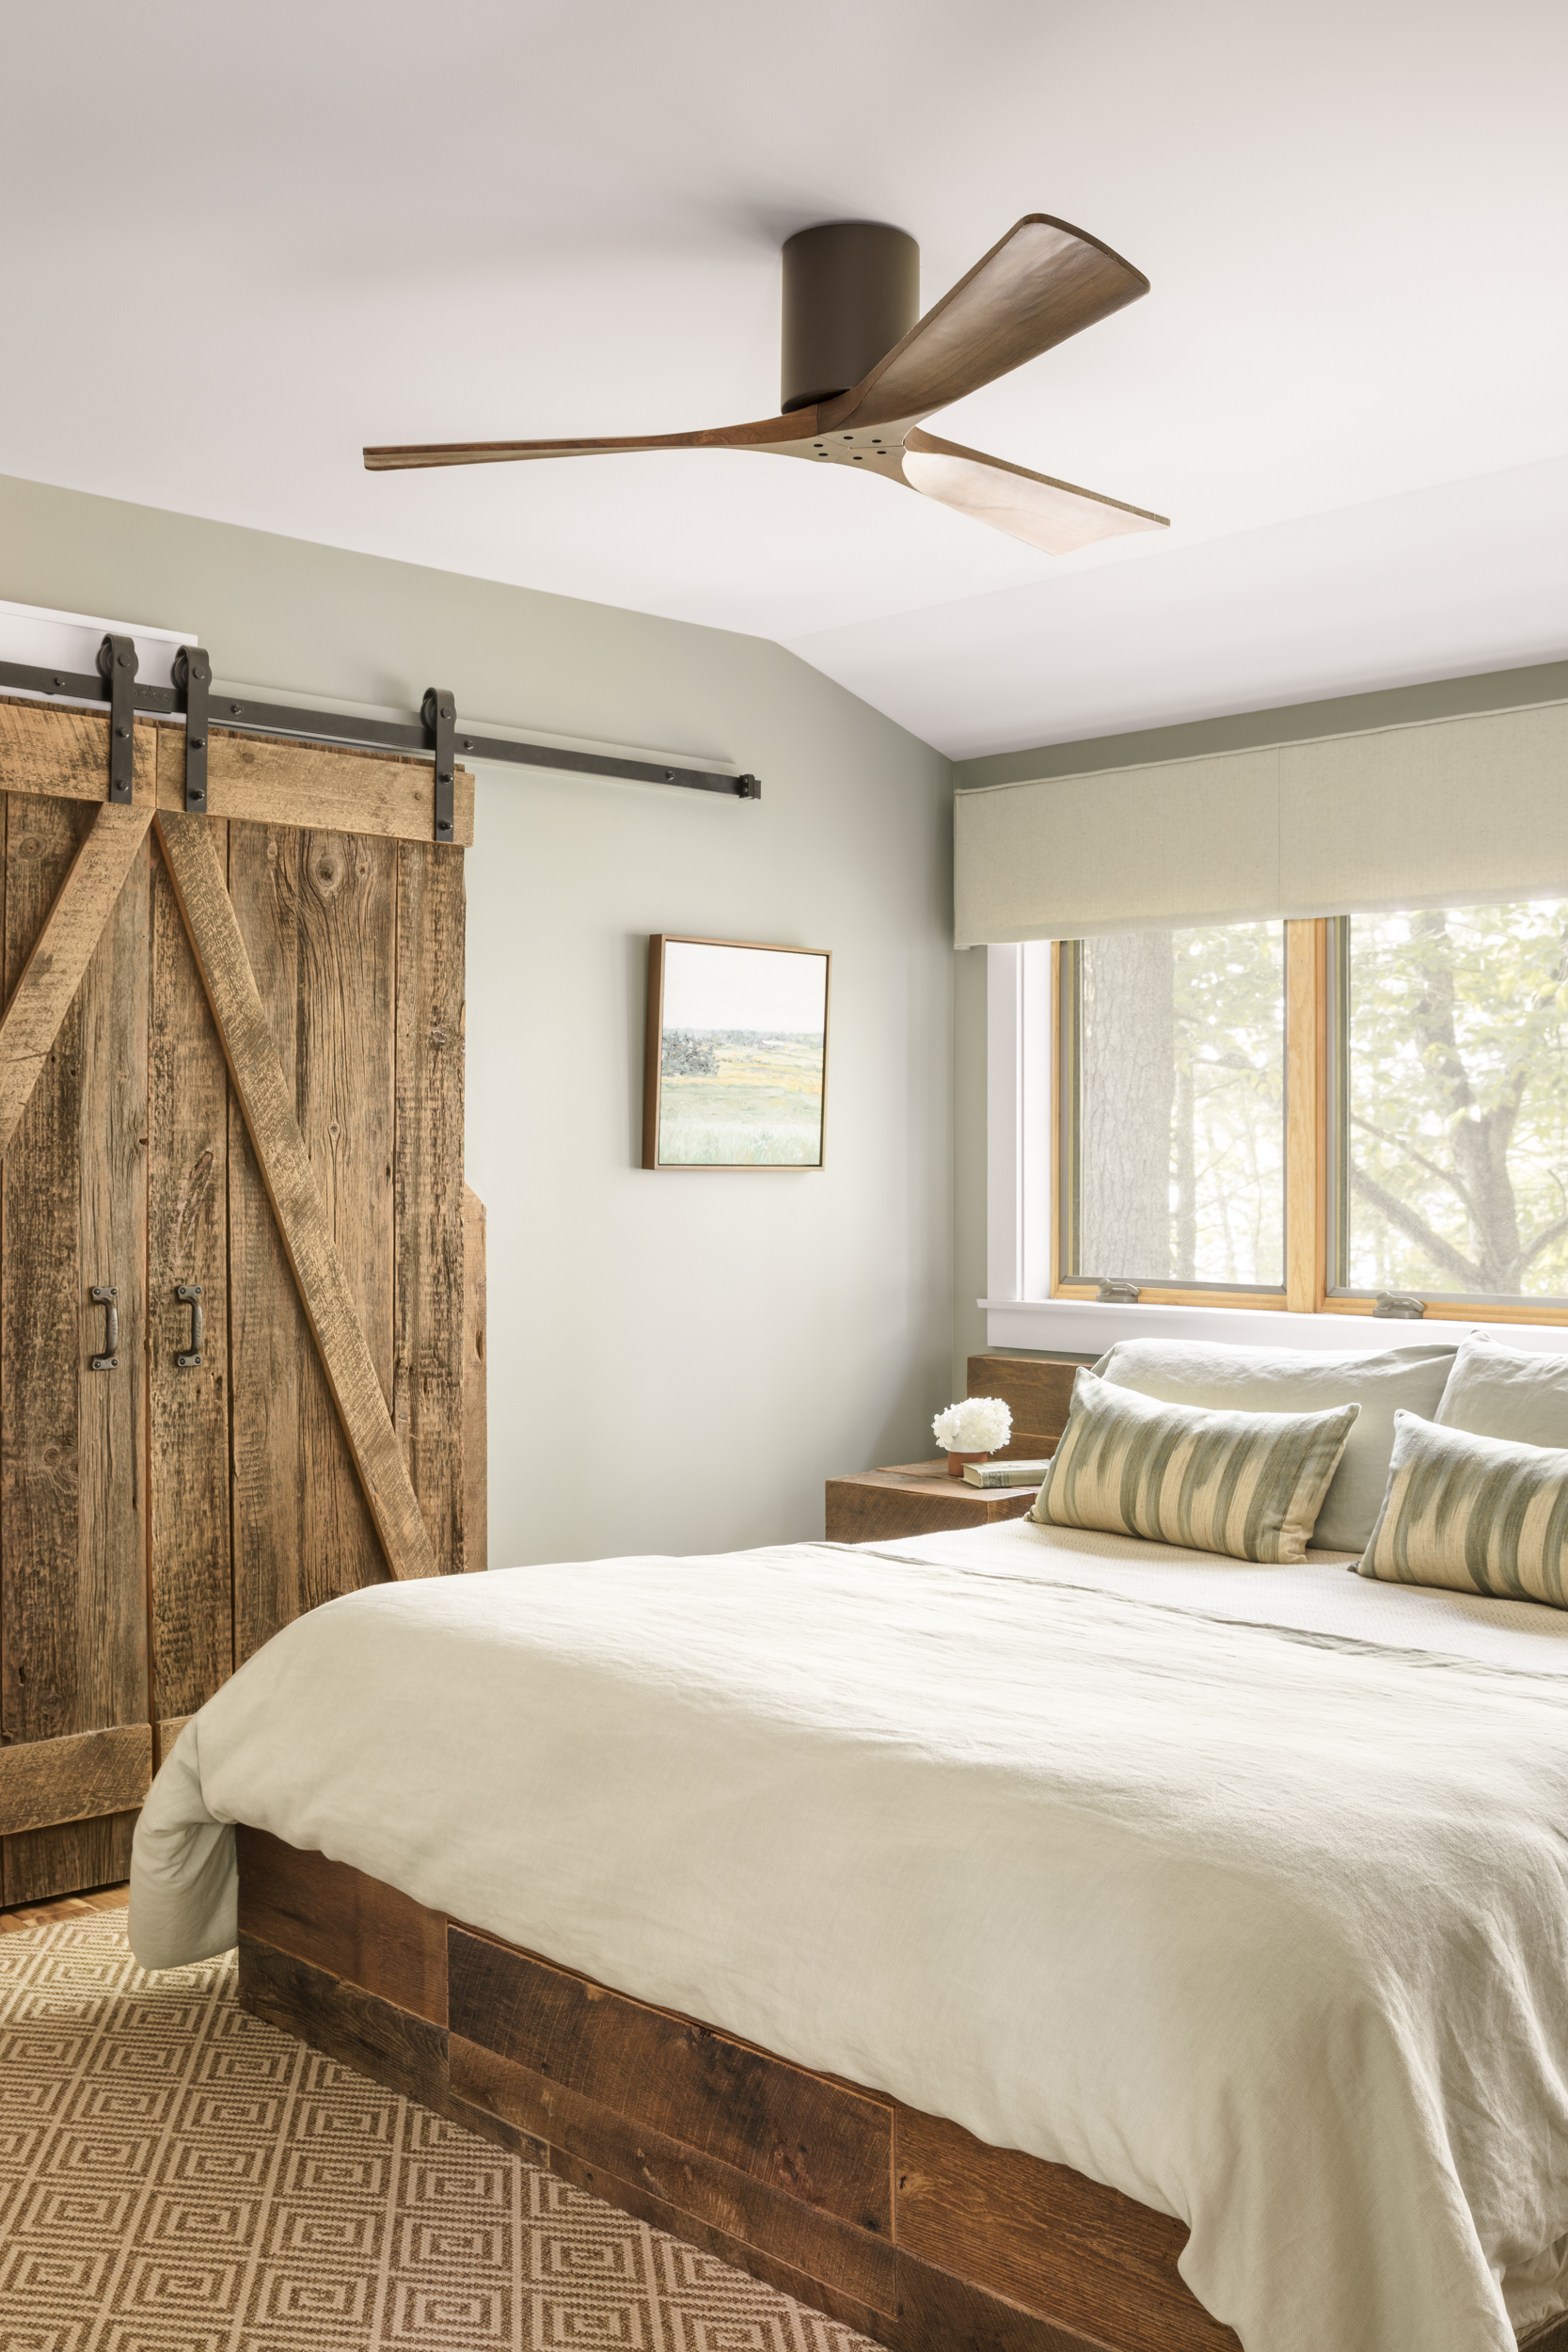 This master bedroom has an indoor outdoor rug that looks like natural fiber-but it can be hosed off and will last for decades! The custom bed has 5 hidden drawers in it, eliminating the need for a dresser. Built out of reclaimed wood from Maine. The window covering conceals a motorized blackout shade-very helpful for Maine summers where the sun rises before 6am!